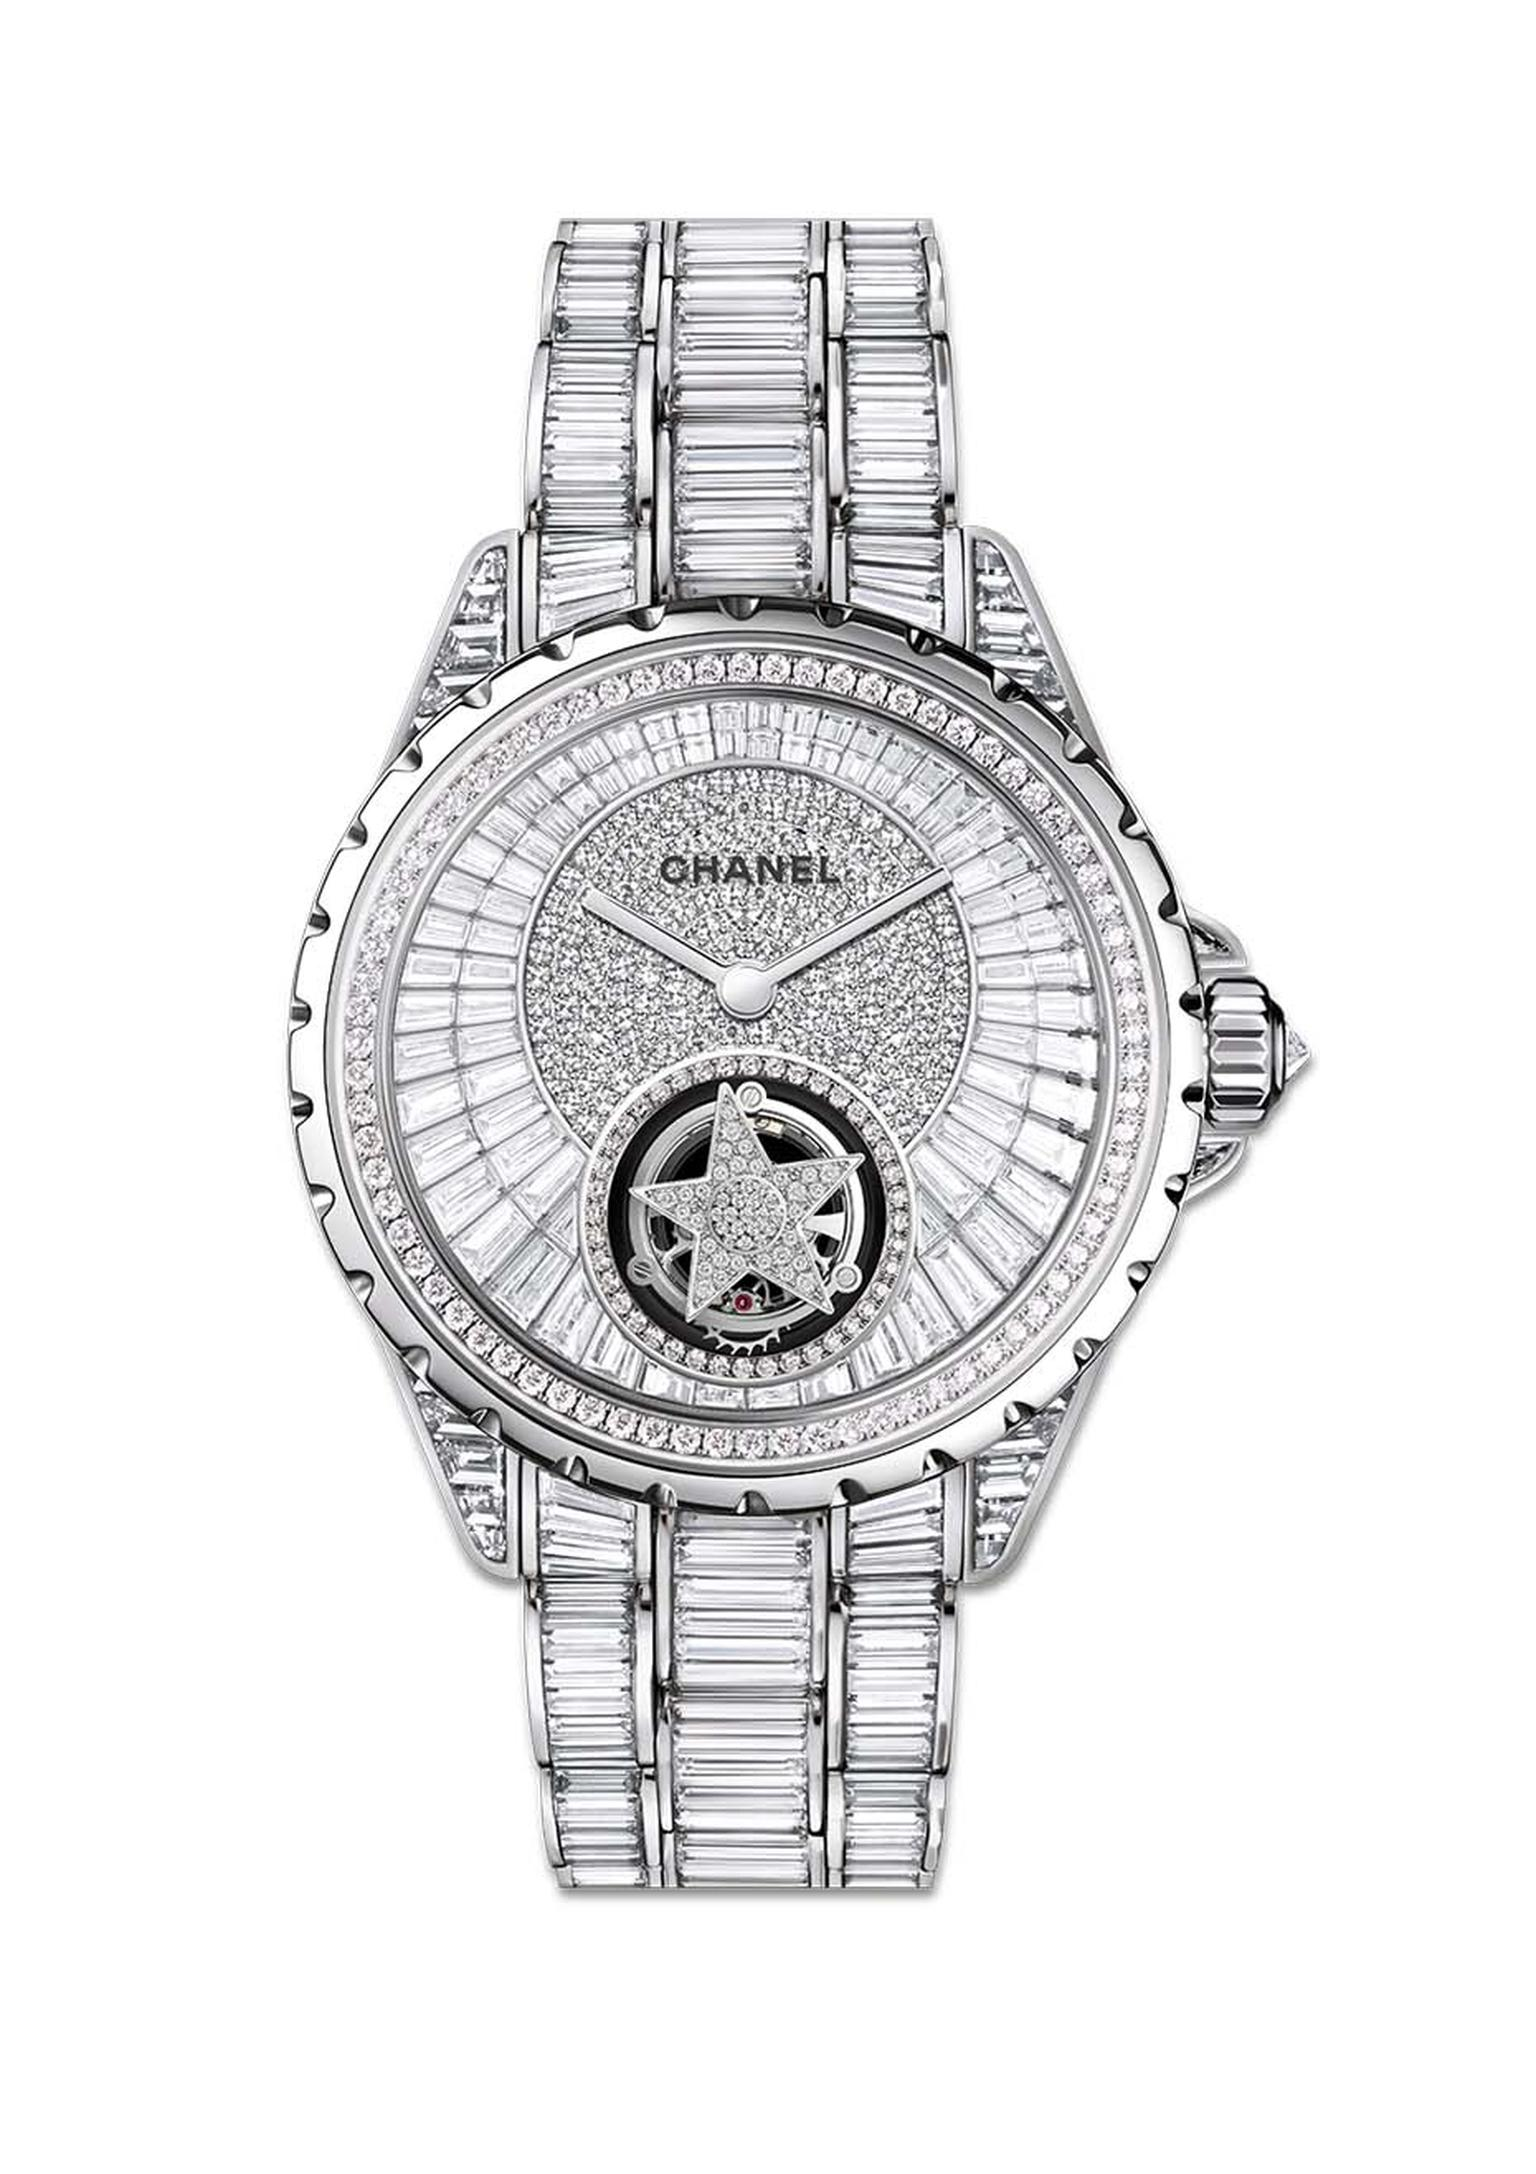 The Chanel J12 Flying Tourbillon is worth a cool €1 million. The precision-regulating tourbillon, which rotates once a minute, is used to set a diamond star spinning on the dial of the watch, surrounded by baguette-cut diamonds on the dial, case and brace